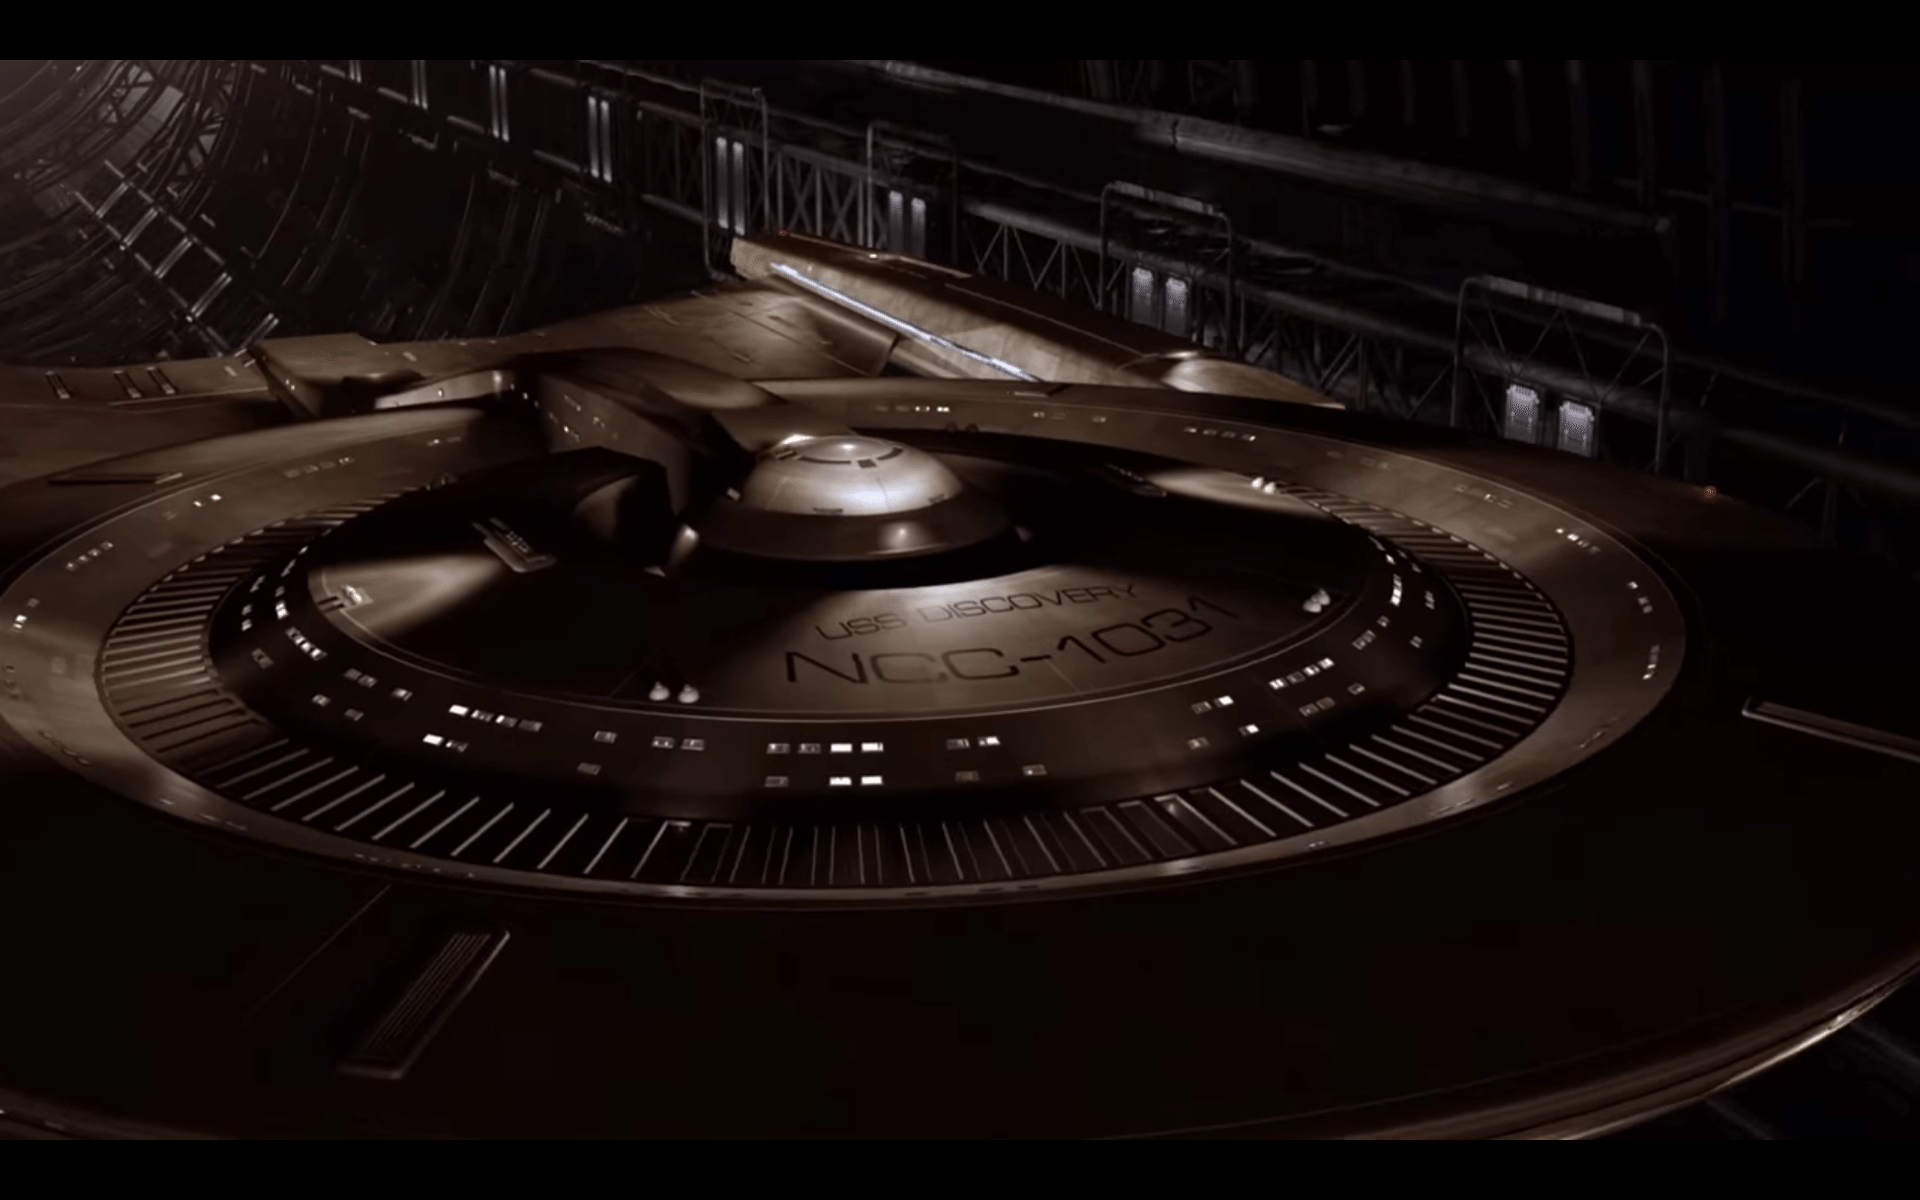 Star Trek: Discovery Wallpapers - Wallpaper Cave